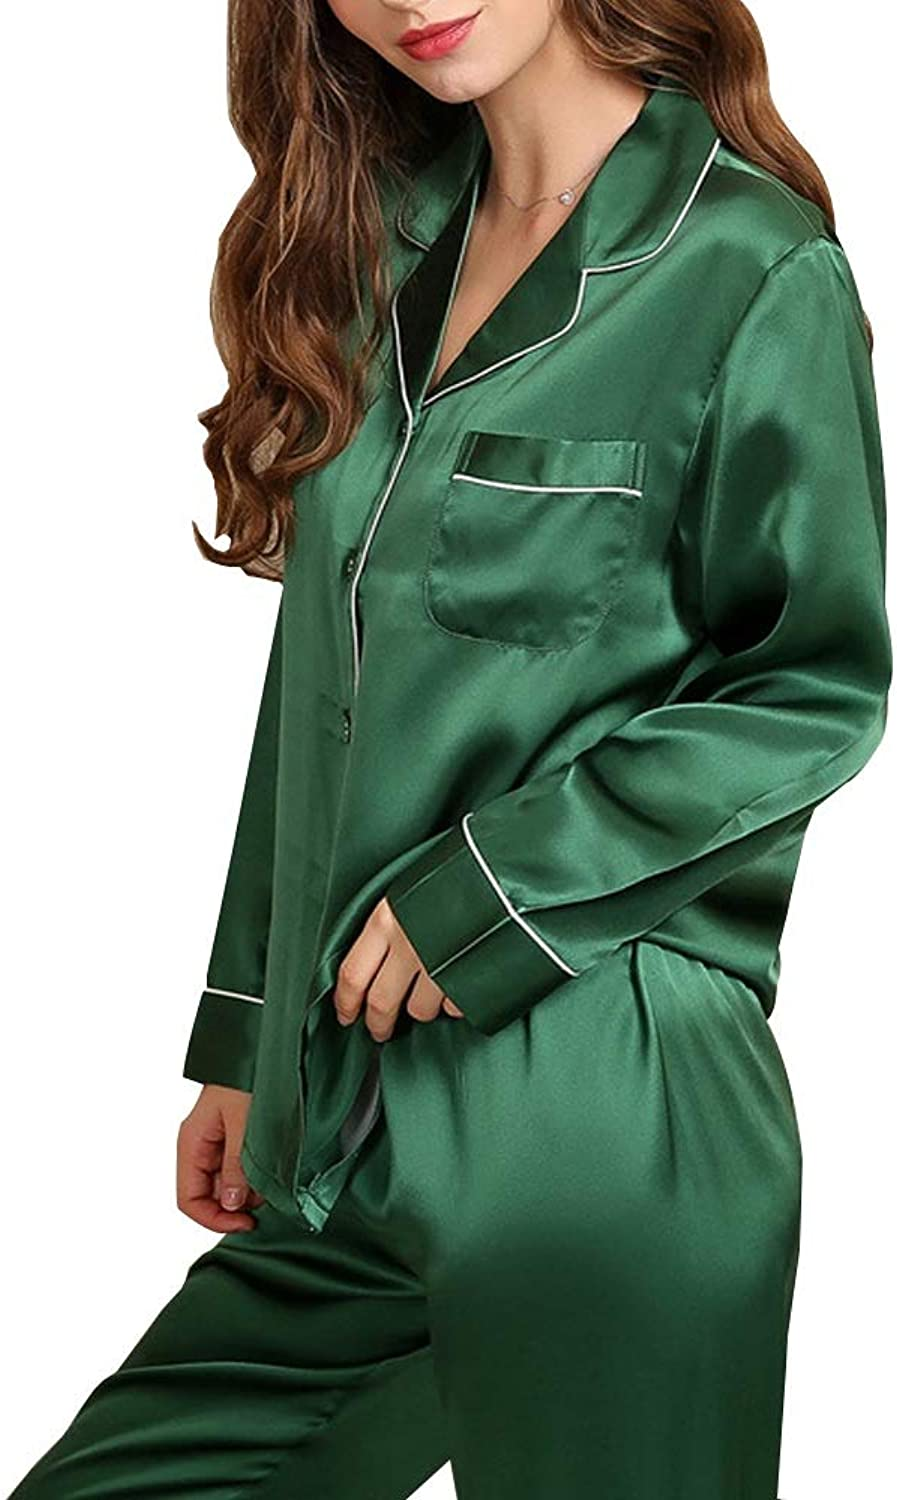 Pajamas Set 100% Mulberry Silk Fabric Green Lapel Ladies Sexy Pajamas Casual Home Service (color   Green, Size   L)